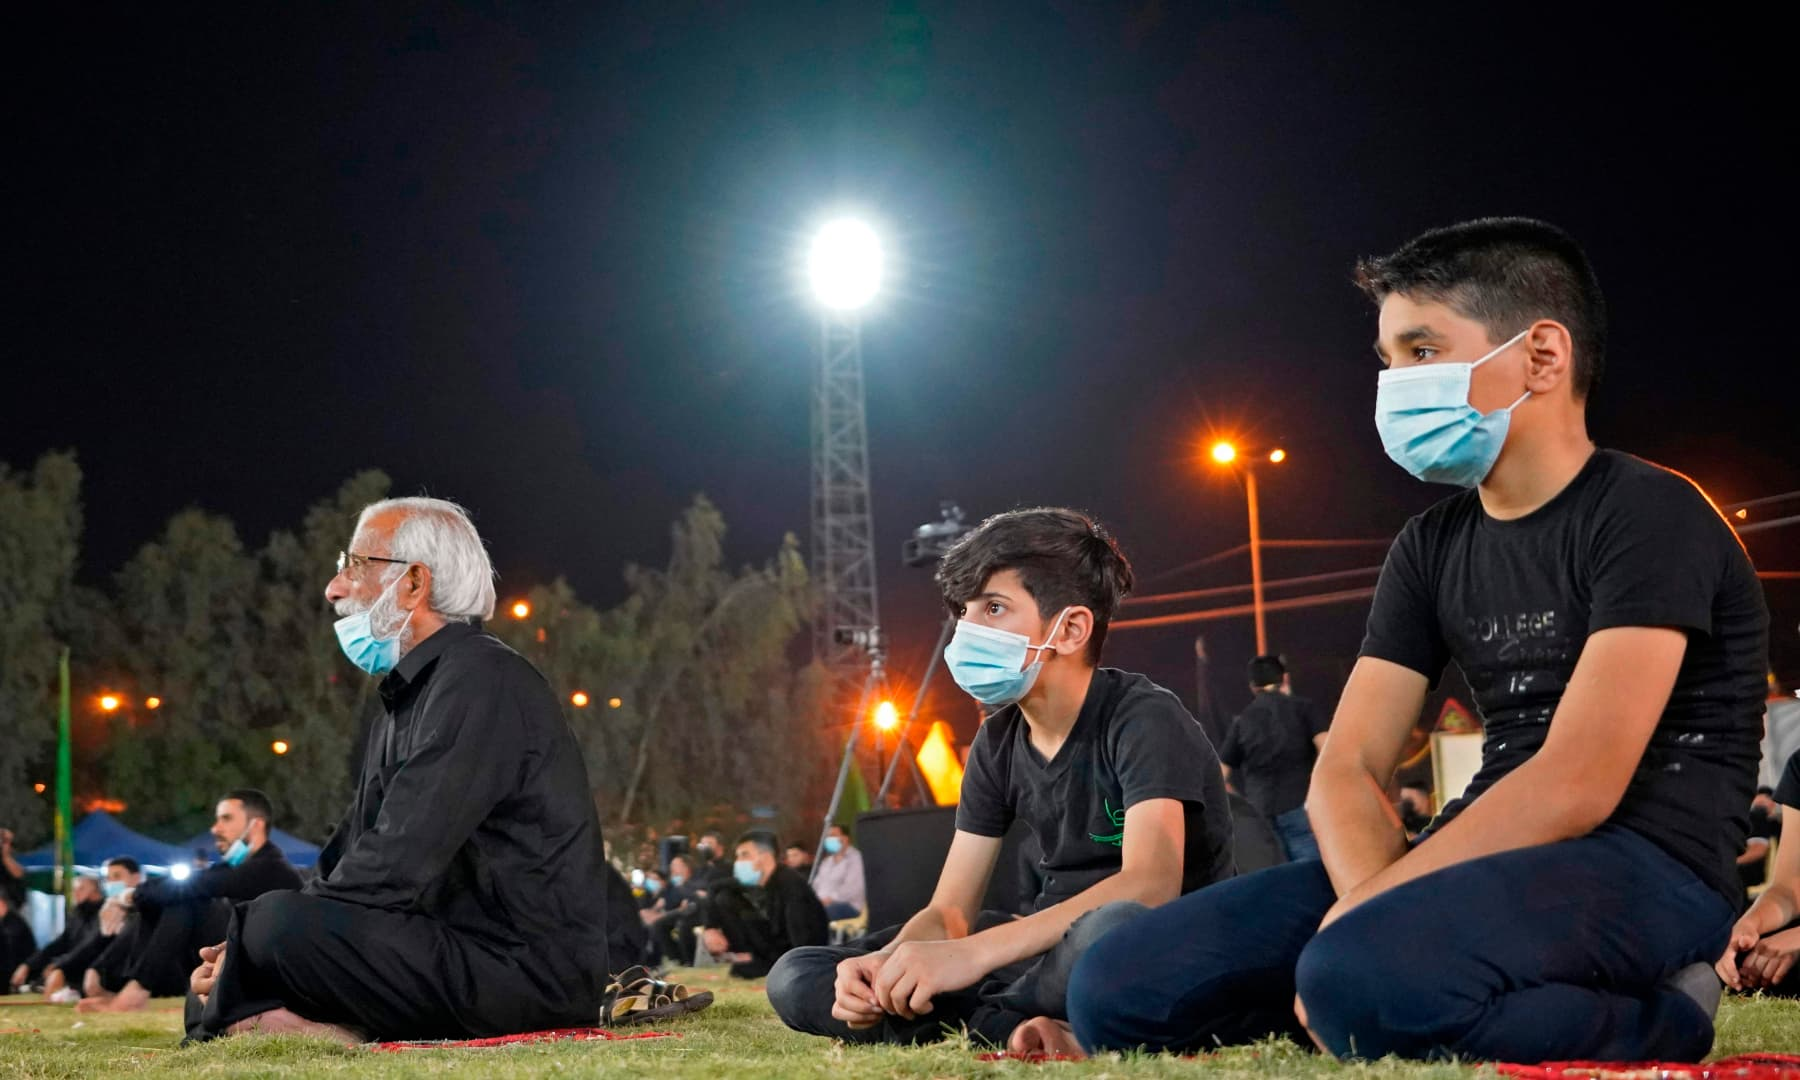 Iraqis respect social distancing due to the coronavirus pandemic as they gather to commemorate the start of the month of Muharram ahead of Ashura, in the central city of Najaf, on August 20. — AFP